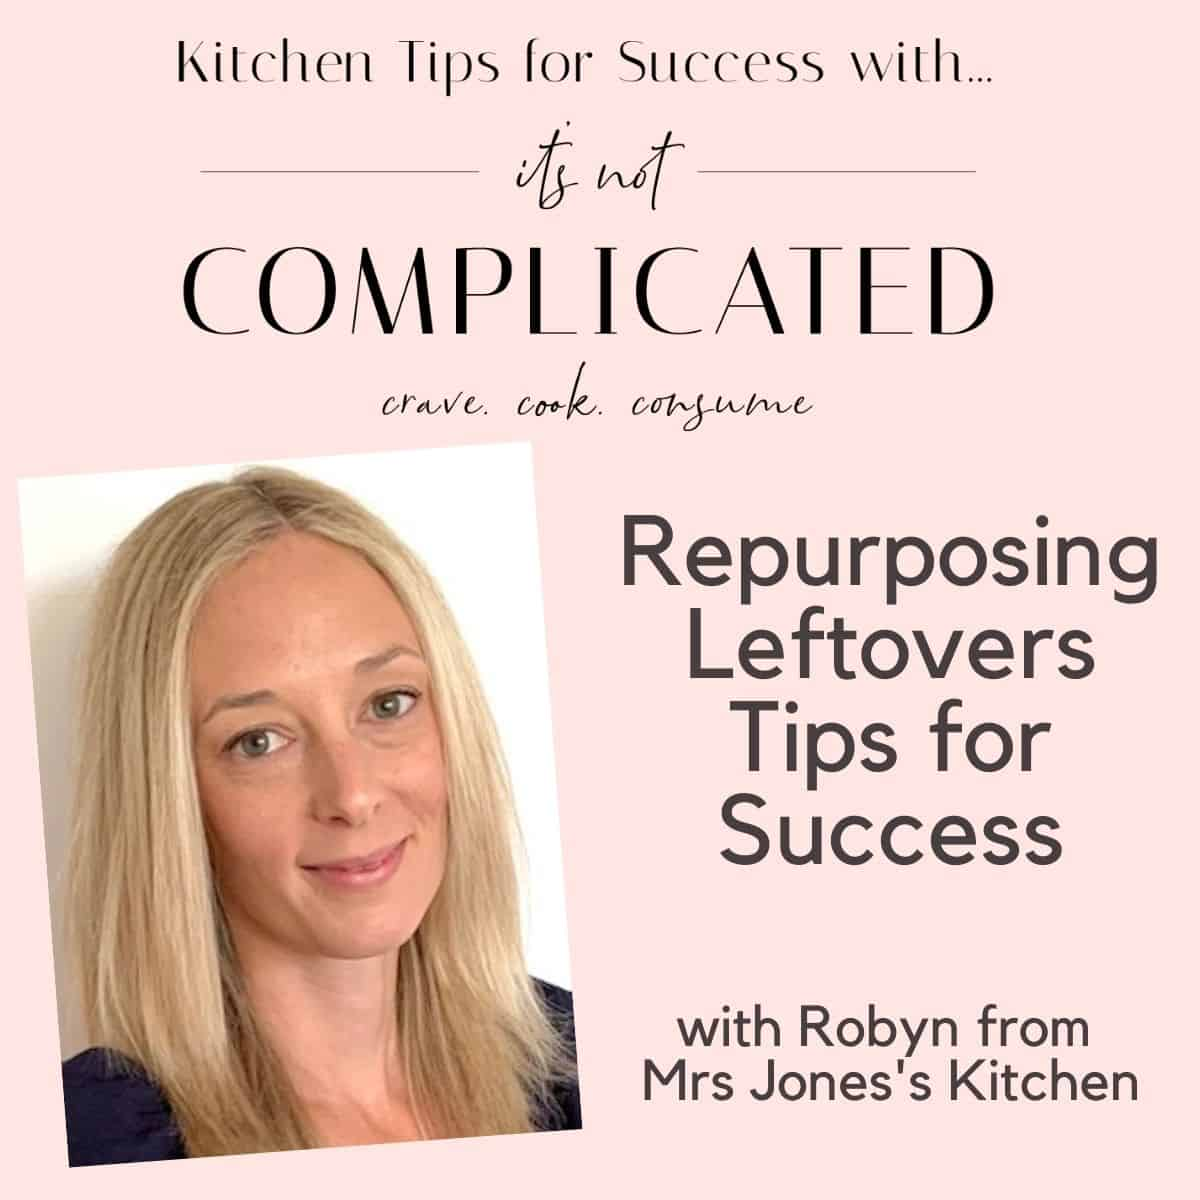 Tips for Success Poster with Robyn from Mrs Jones's Kitchen.